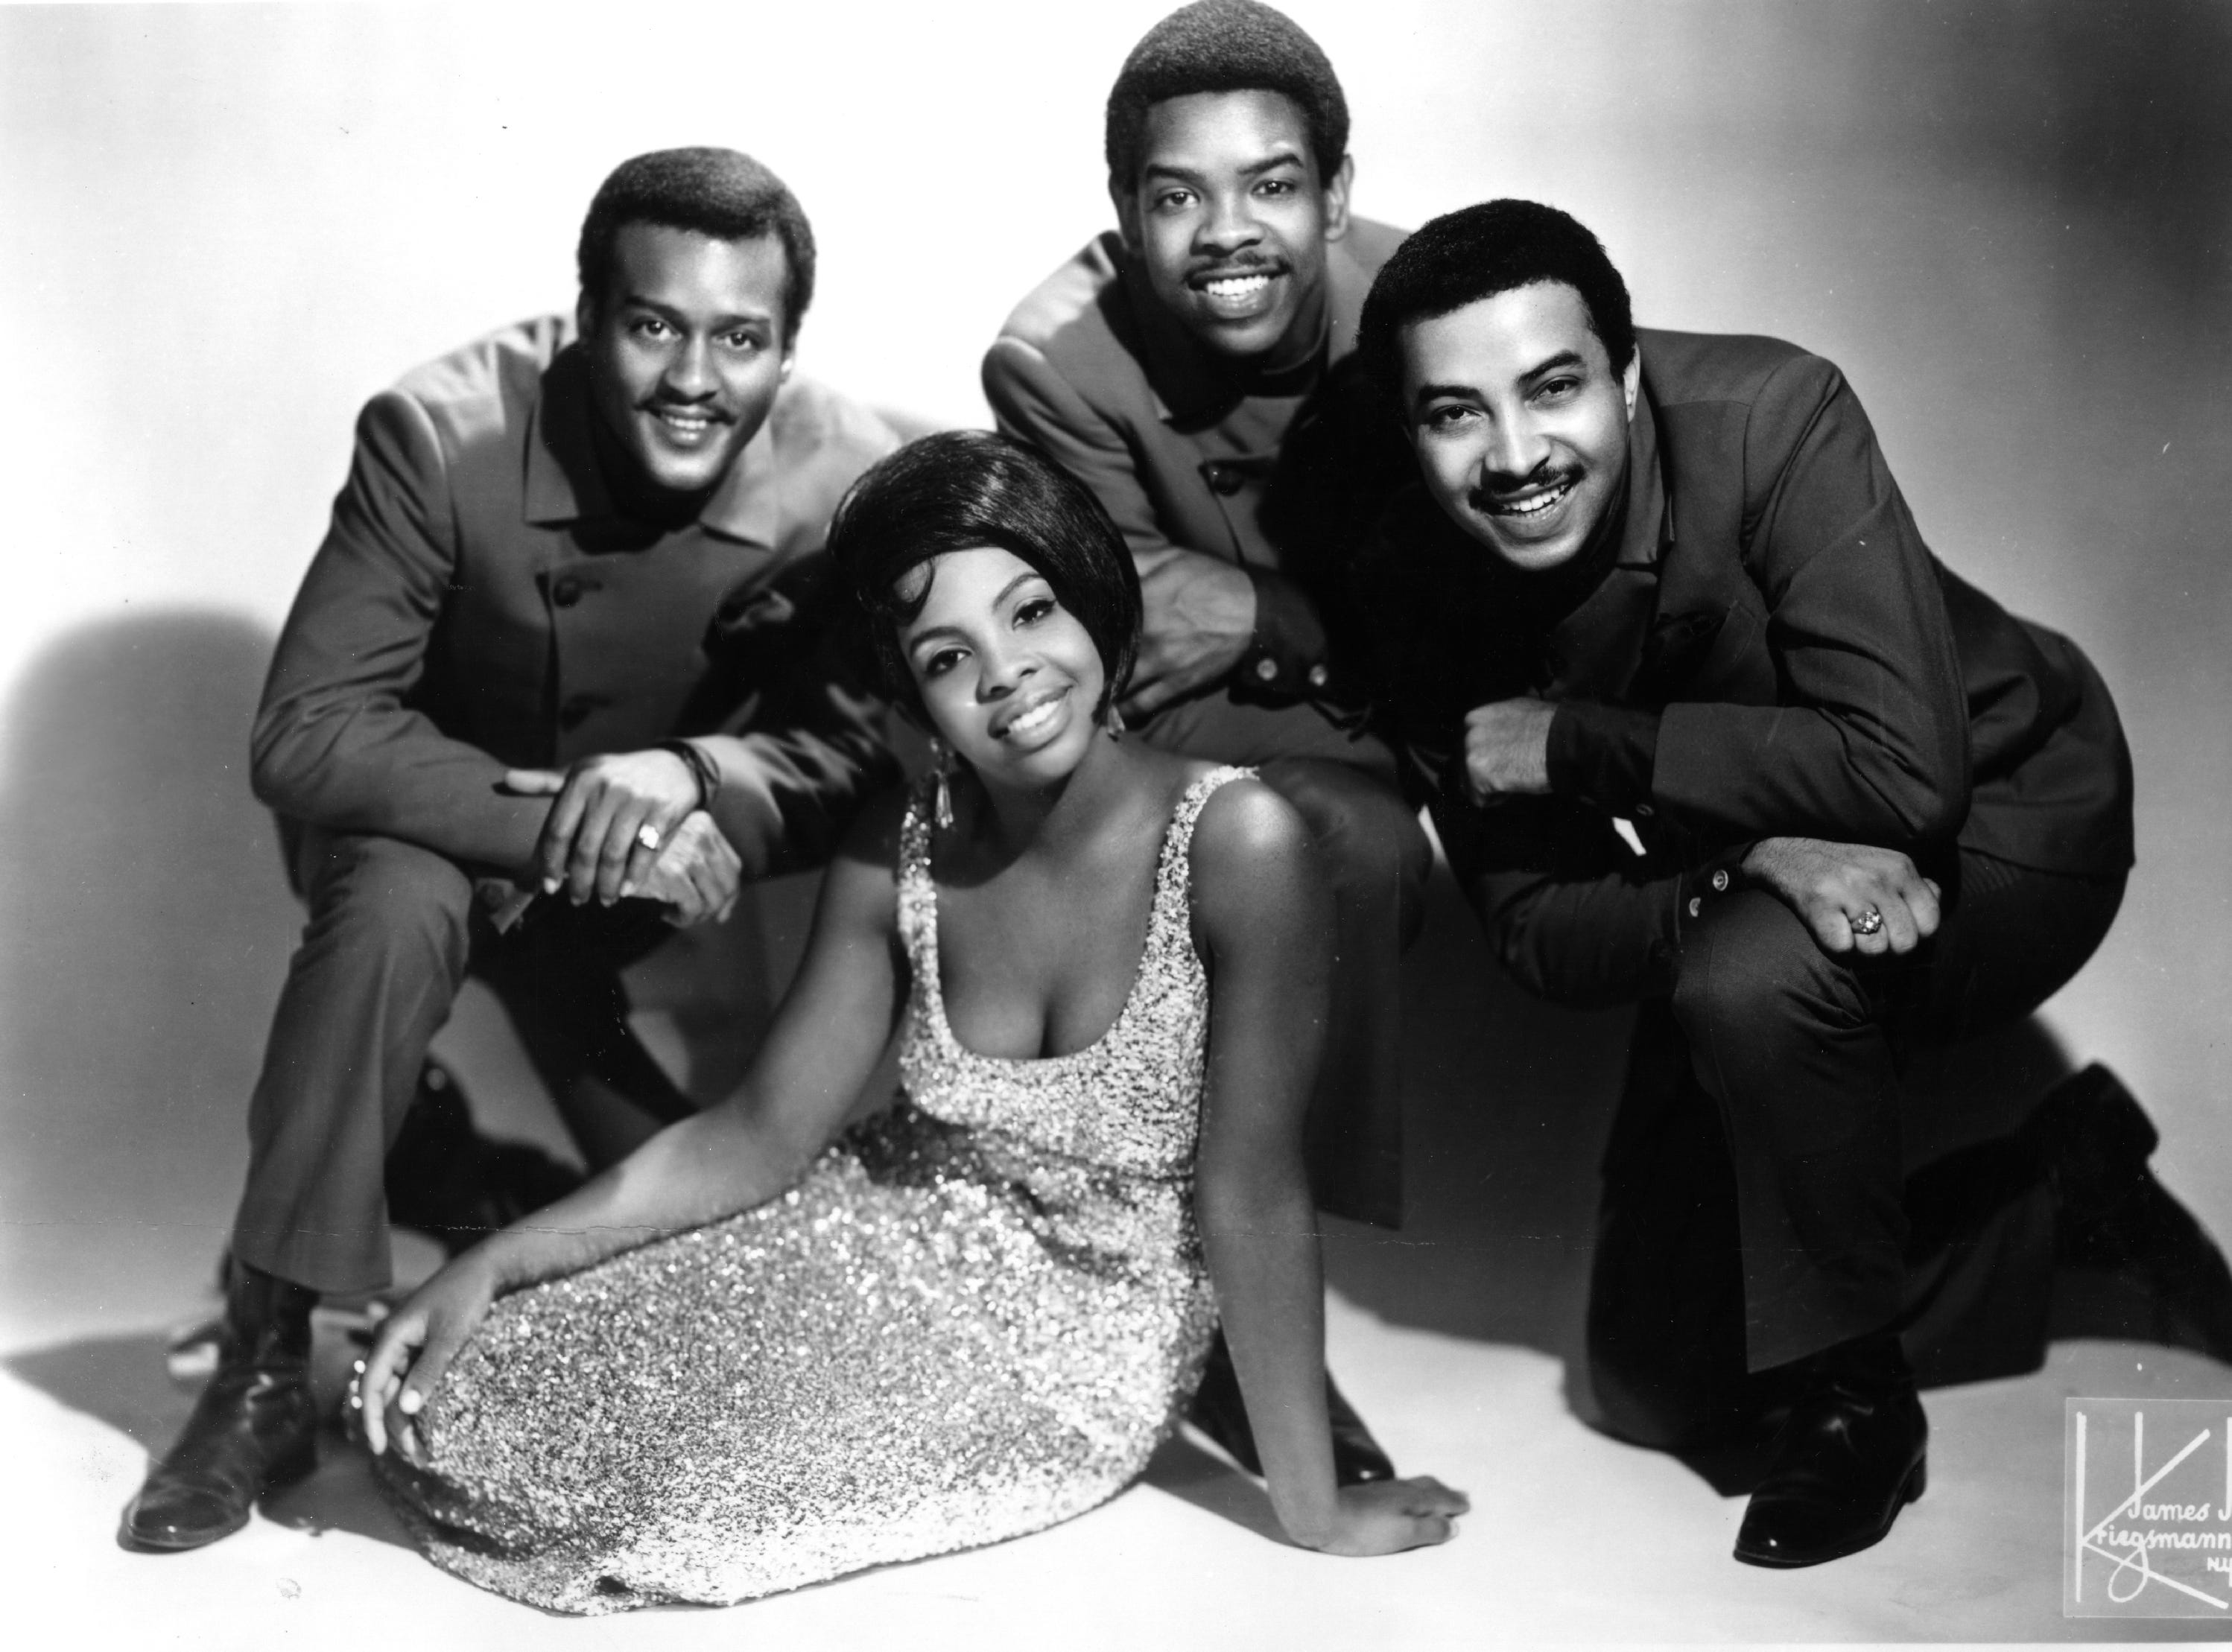 Undated image of Gladys Knight & the Pips